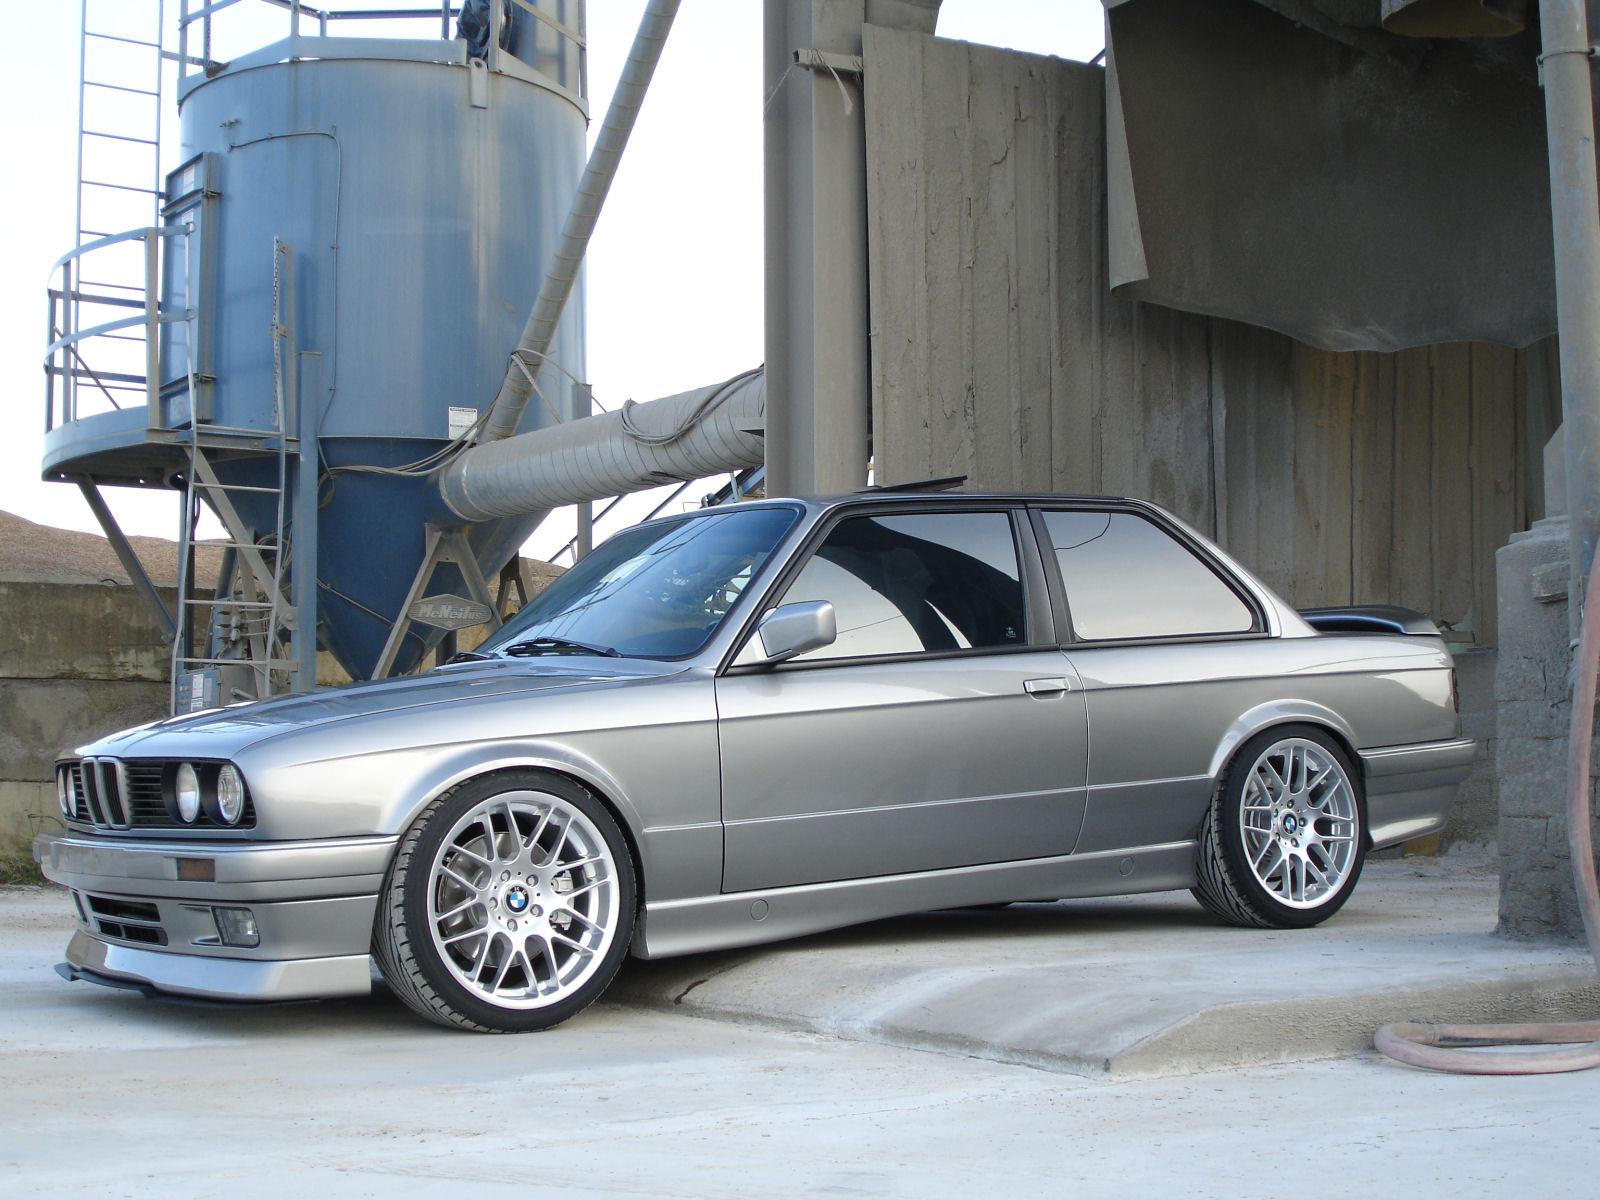 BMW 3 series 325ix 1991 photo - 9